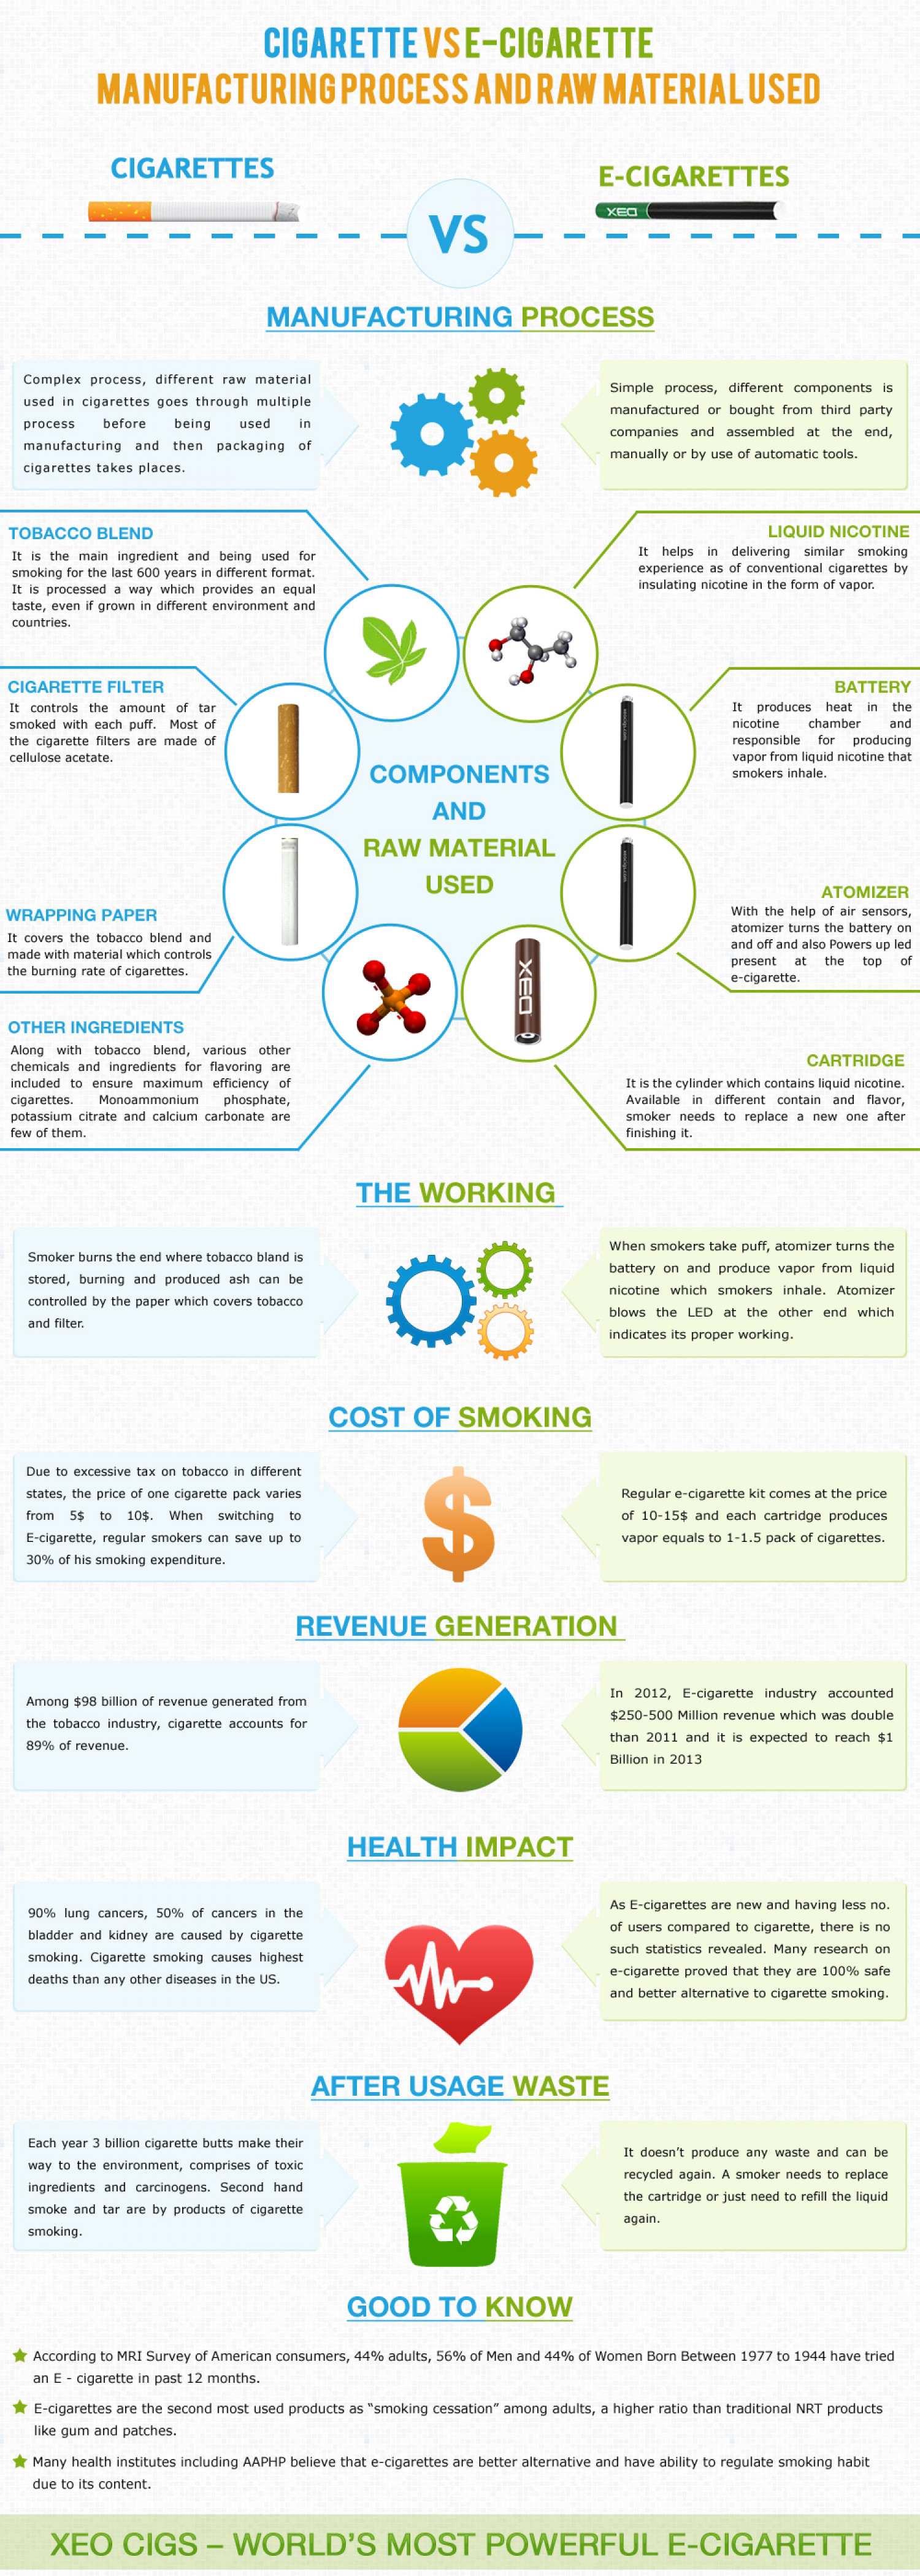 Cigarette Vs E-cigarette : Manufacturing Process and Raw Material Used  Infographic